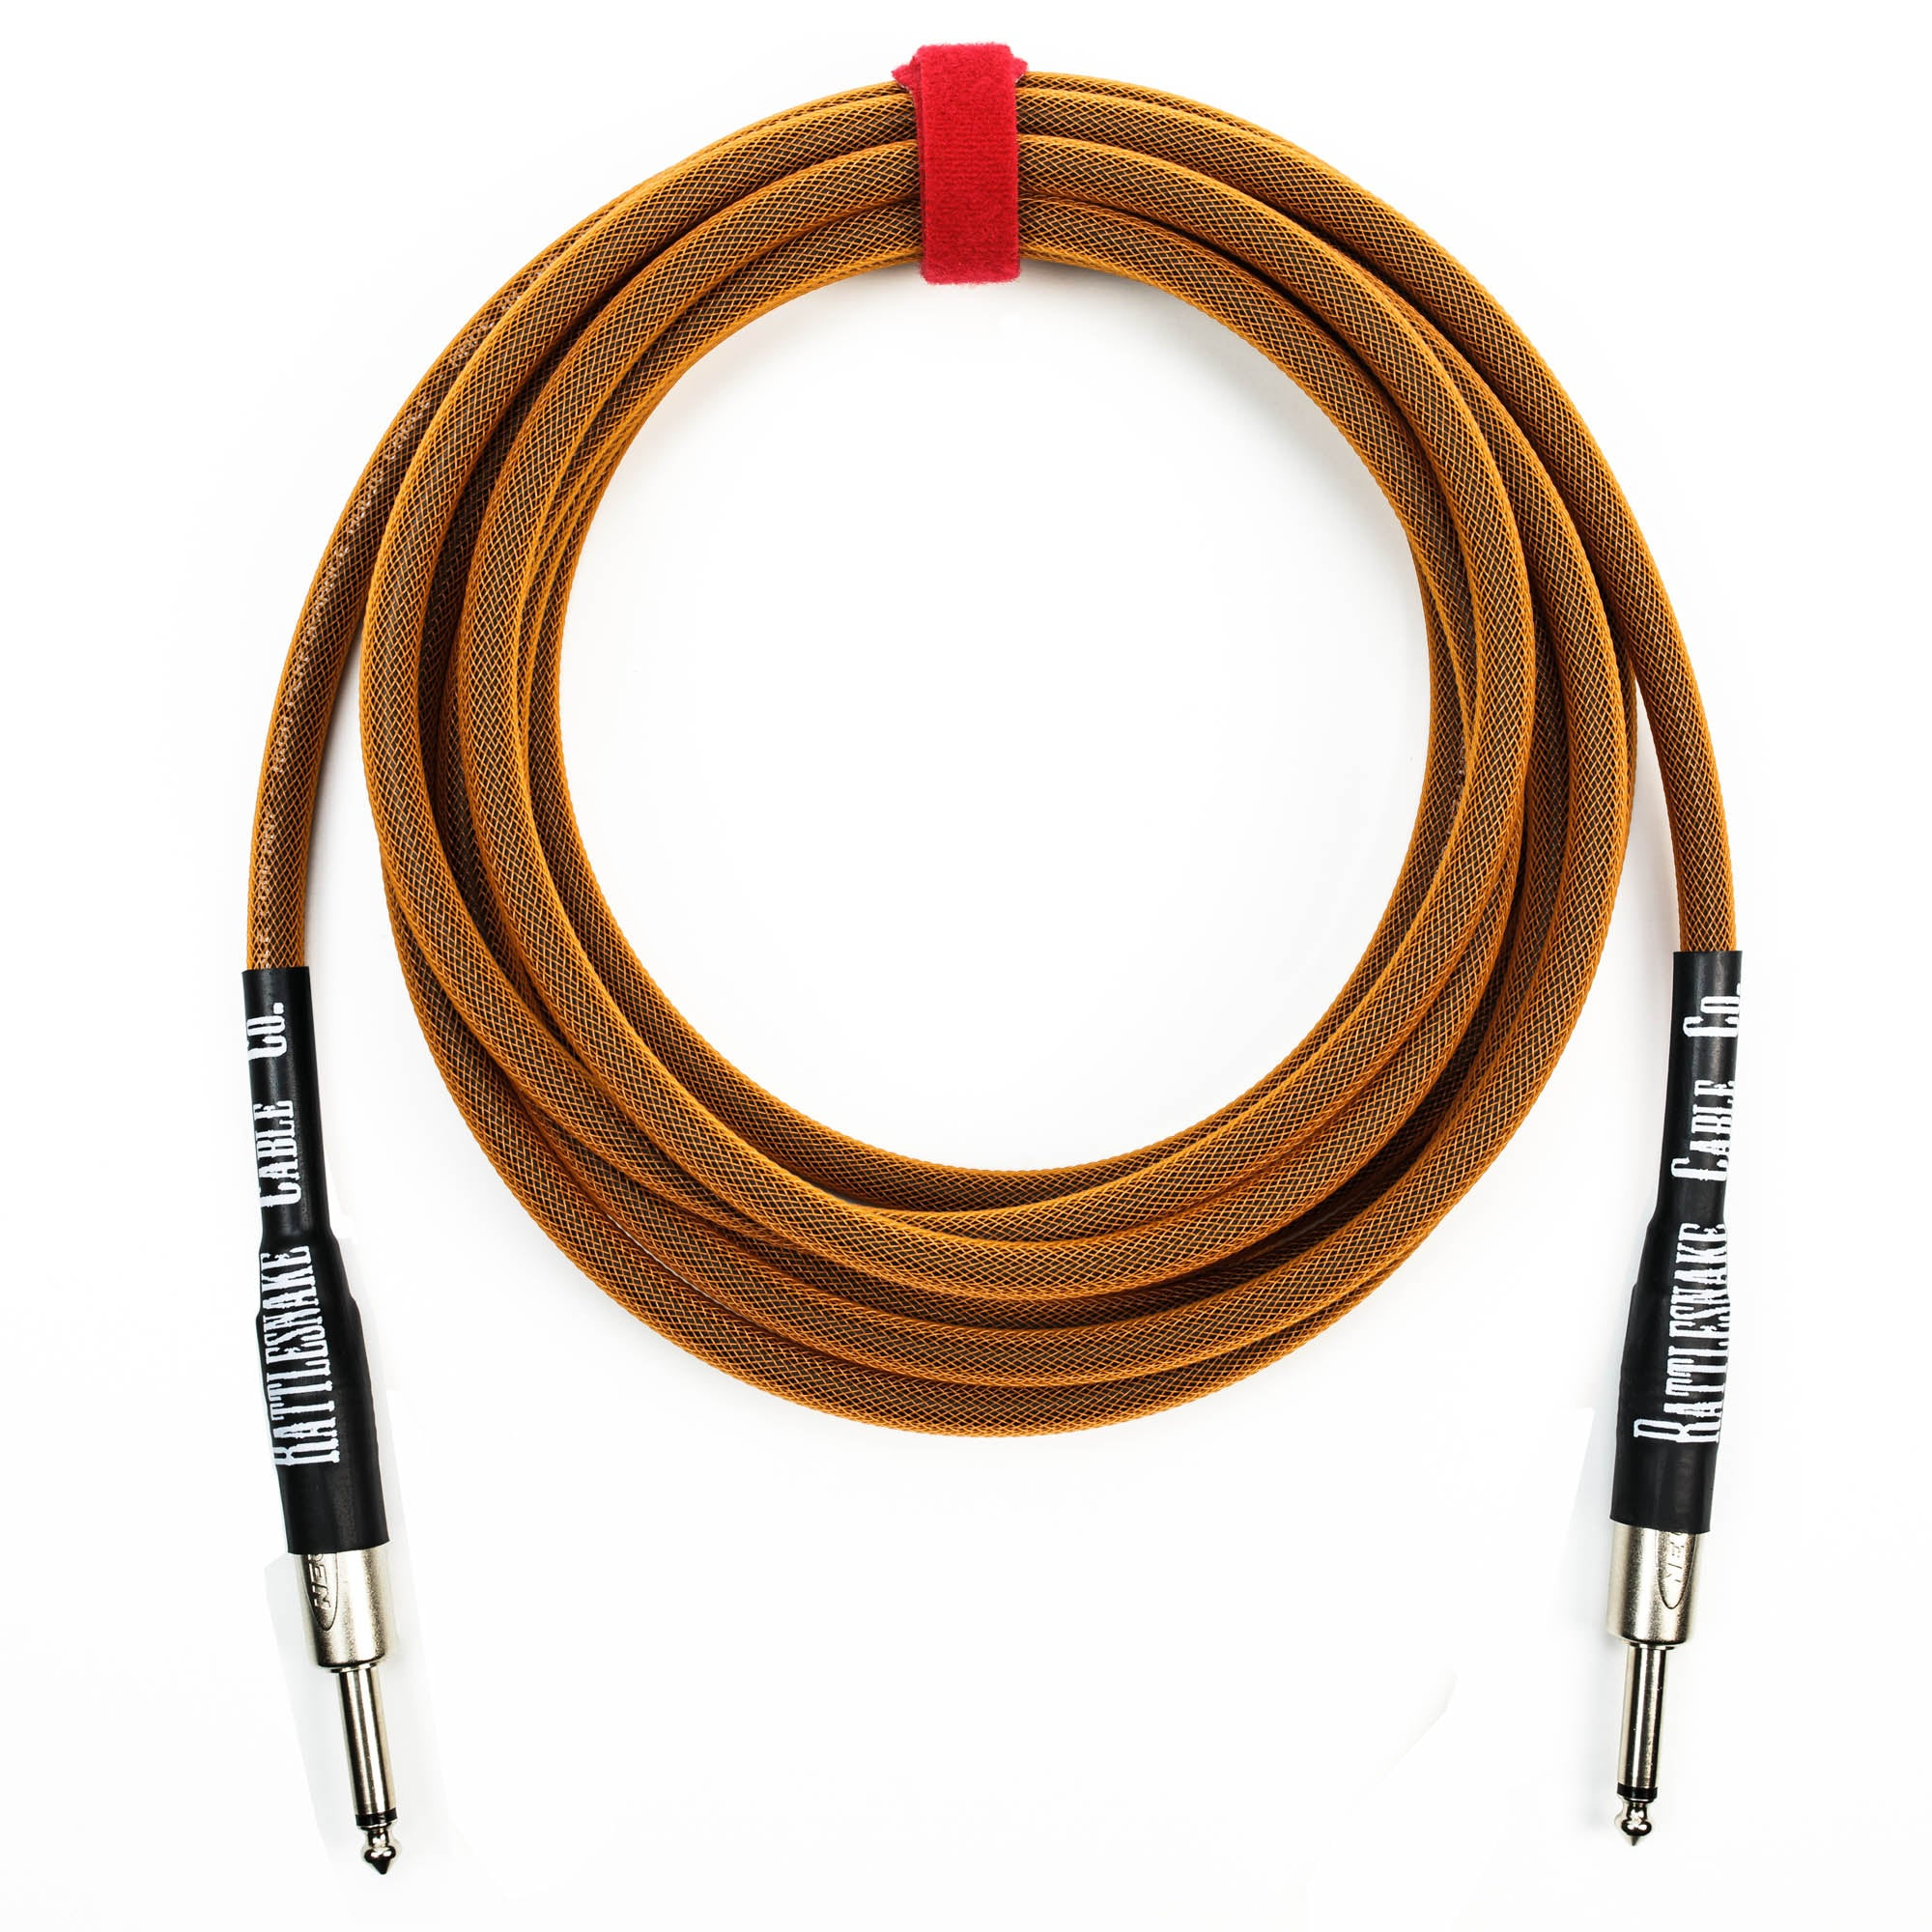 Rattlesnake Cable Company 15' Copper Guitar Cable - Straight Plugs